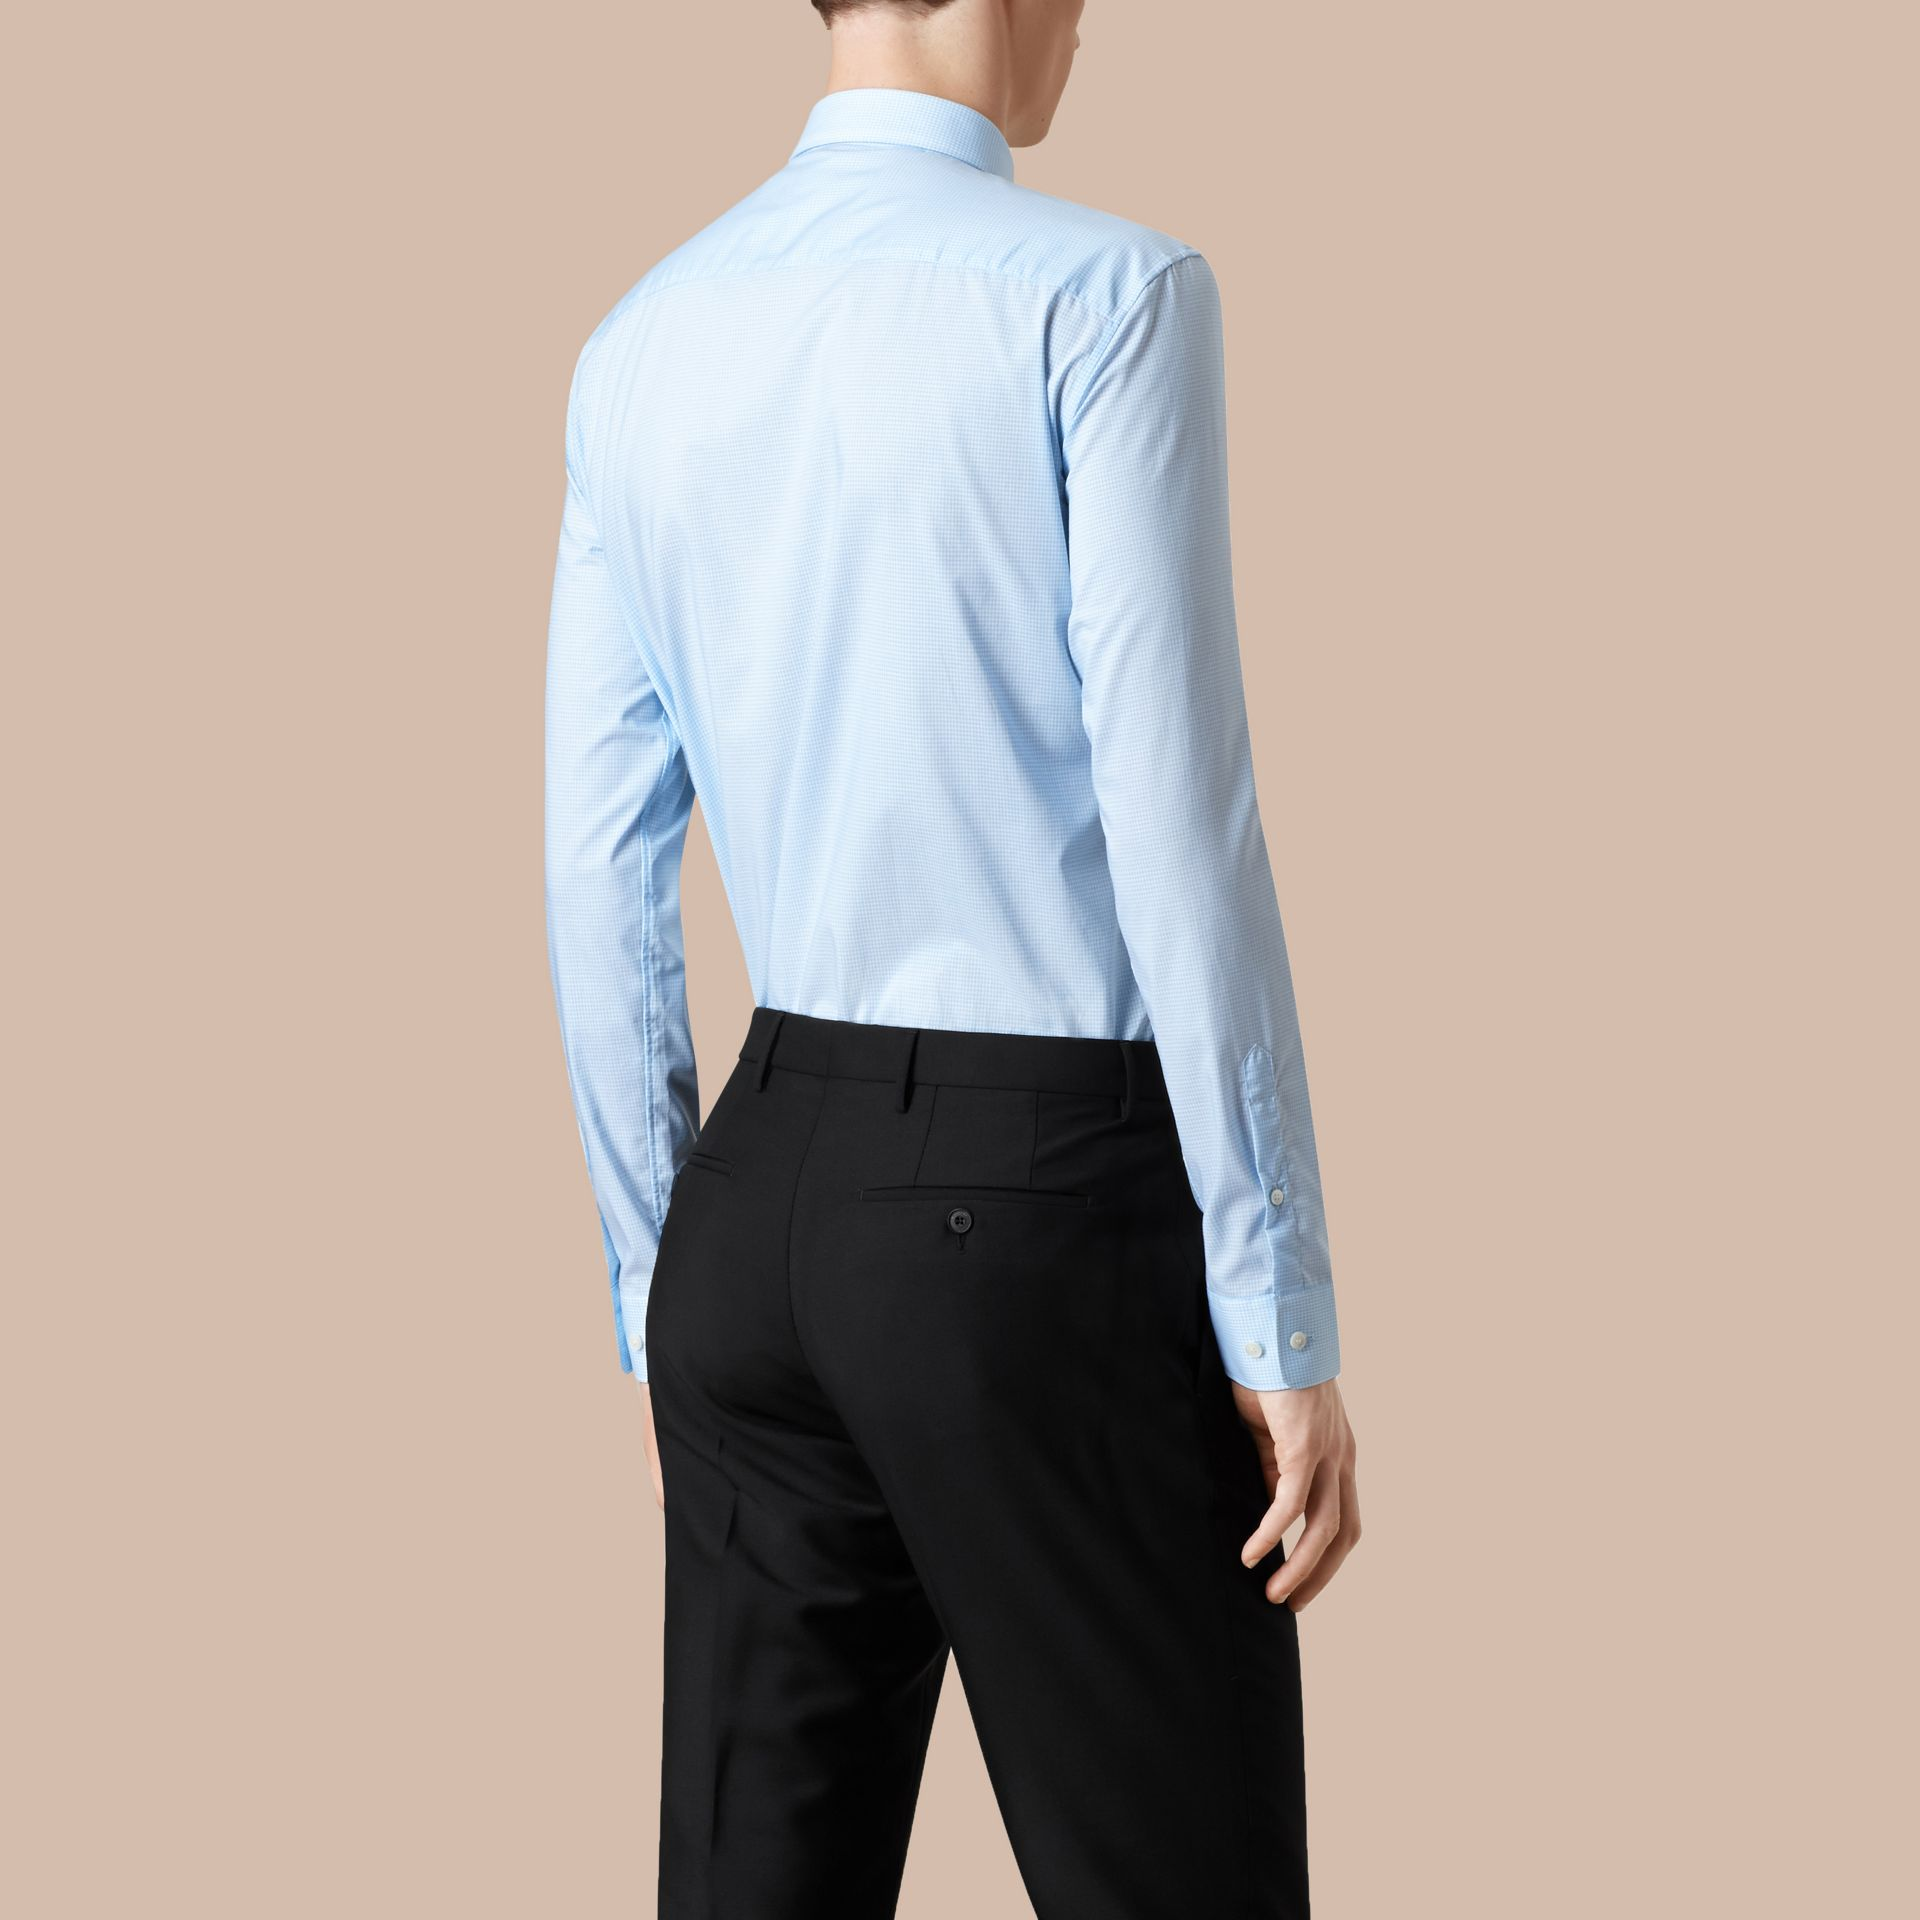 City blue Modern Fit Gingham Cotton Poplin Shirt City Blue - gallery image 3